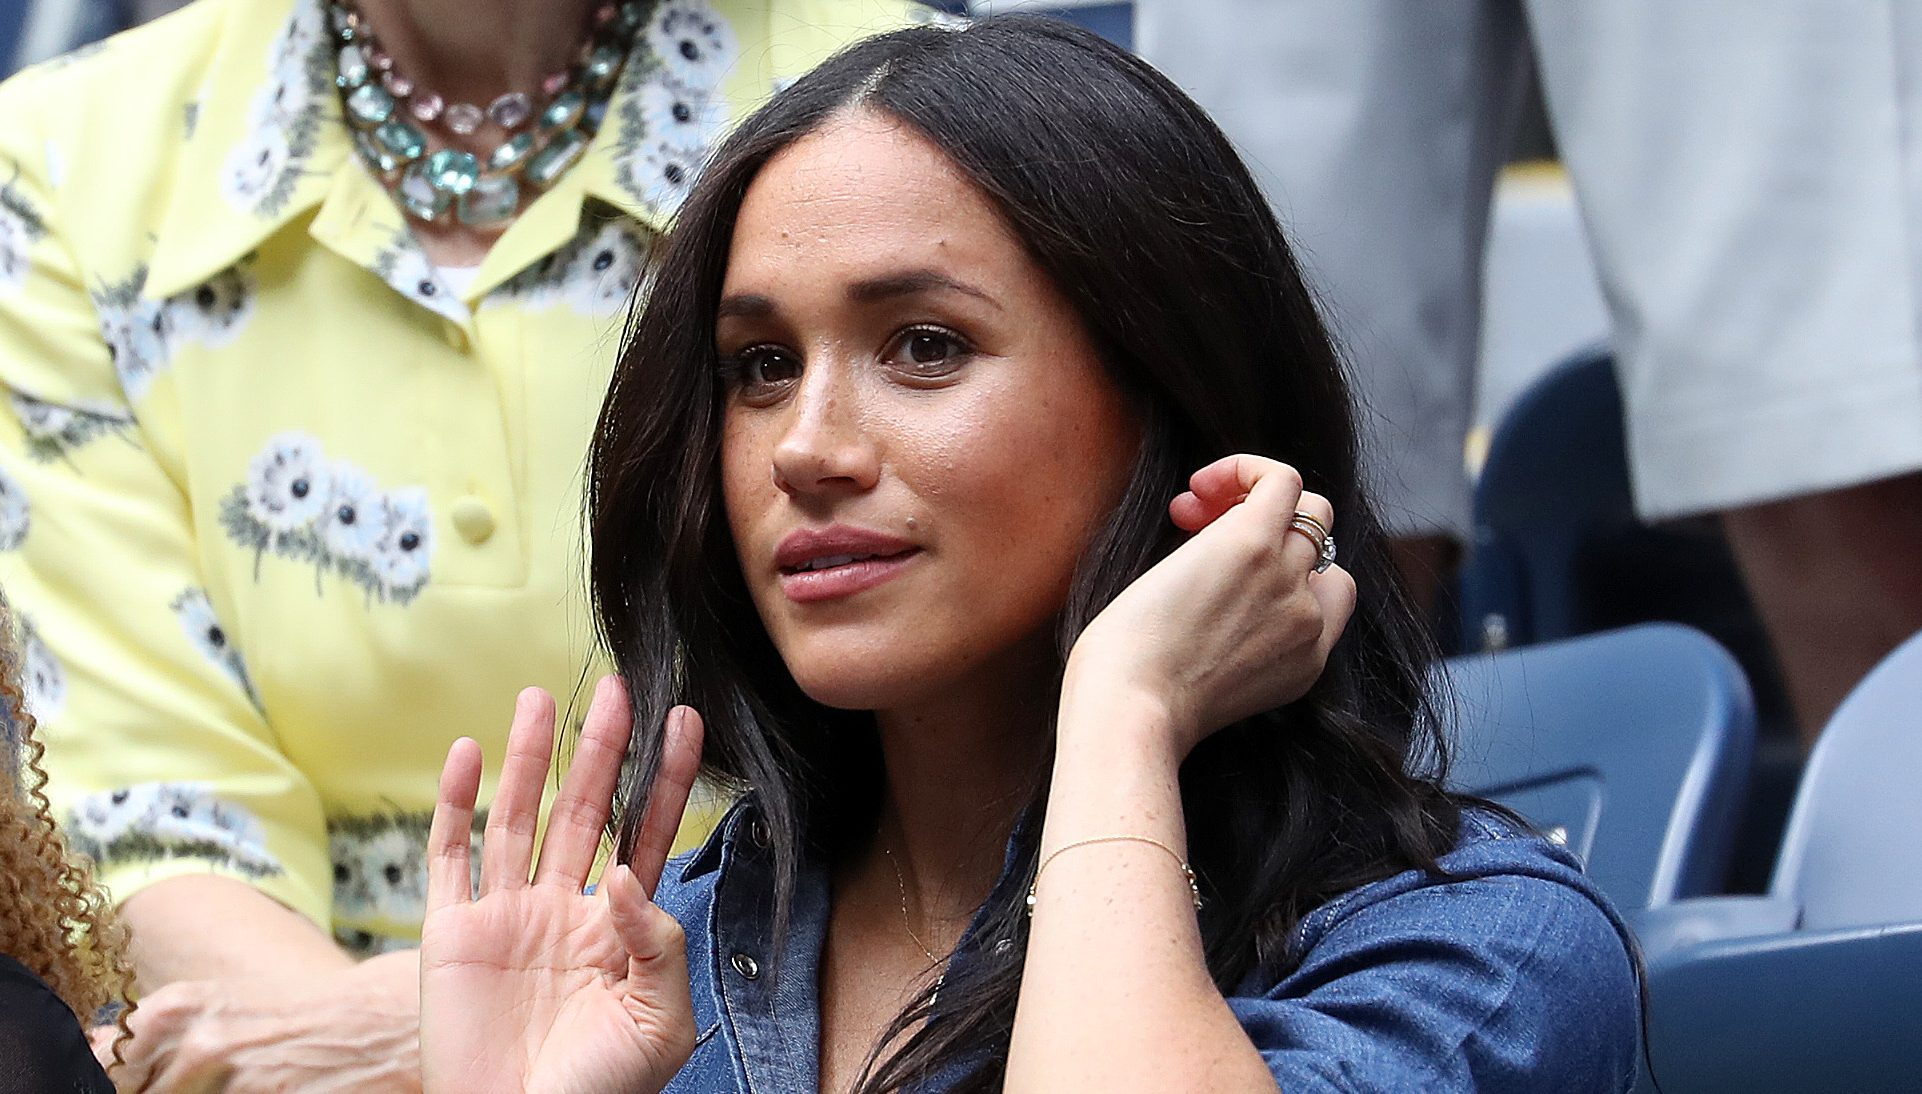 Meghan Markle's pal reportedly ordered to remove 'damaging' pics of the Duchess from Instagram